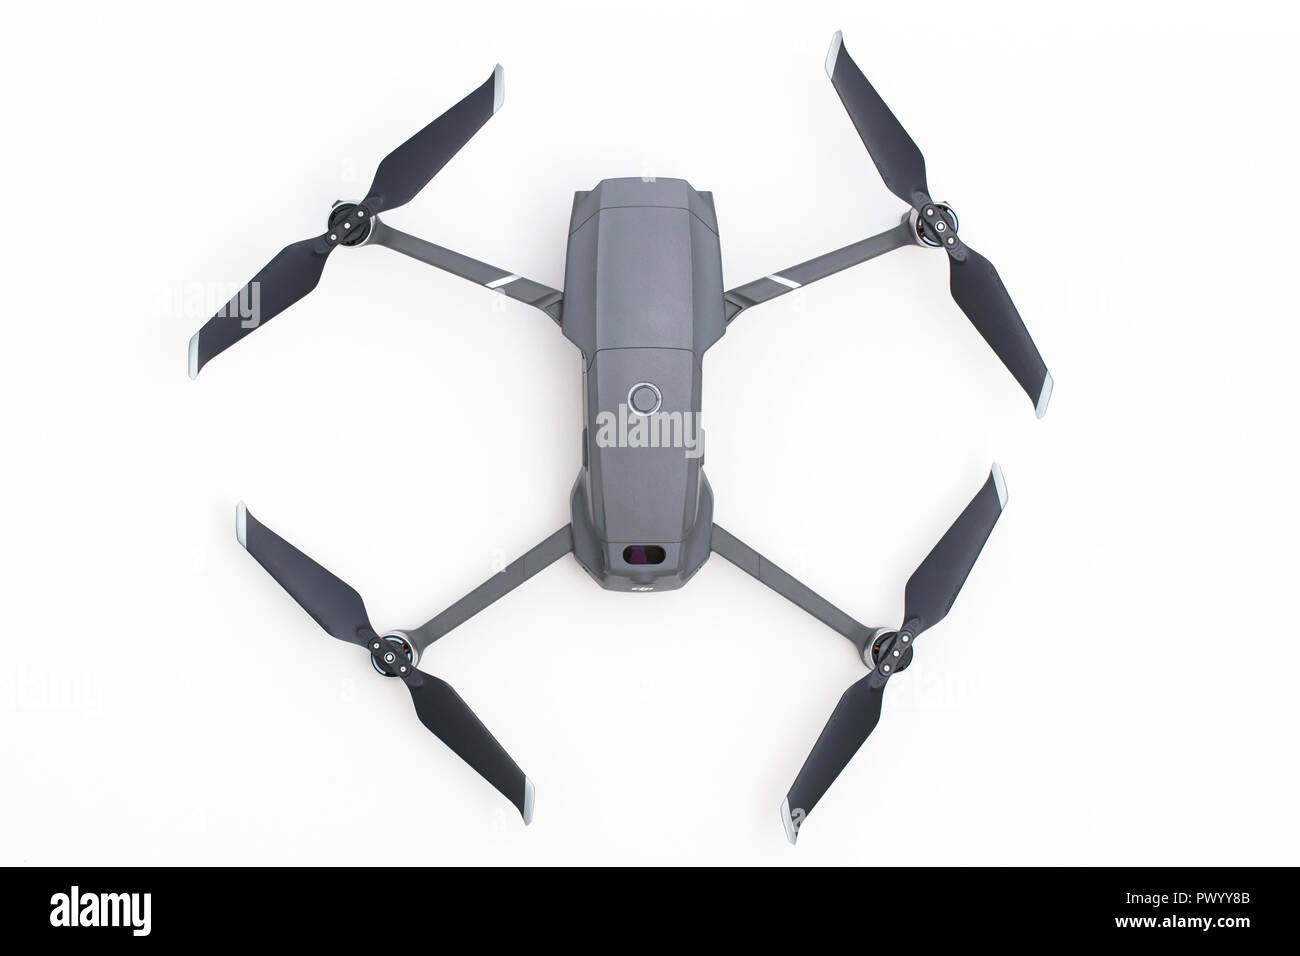 LONDON, UK - OCTOBER 18th 2018: DJI Mavic Pro 2 drone aerial camera on a white background. - Stock Image